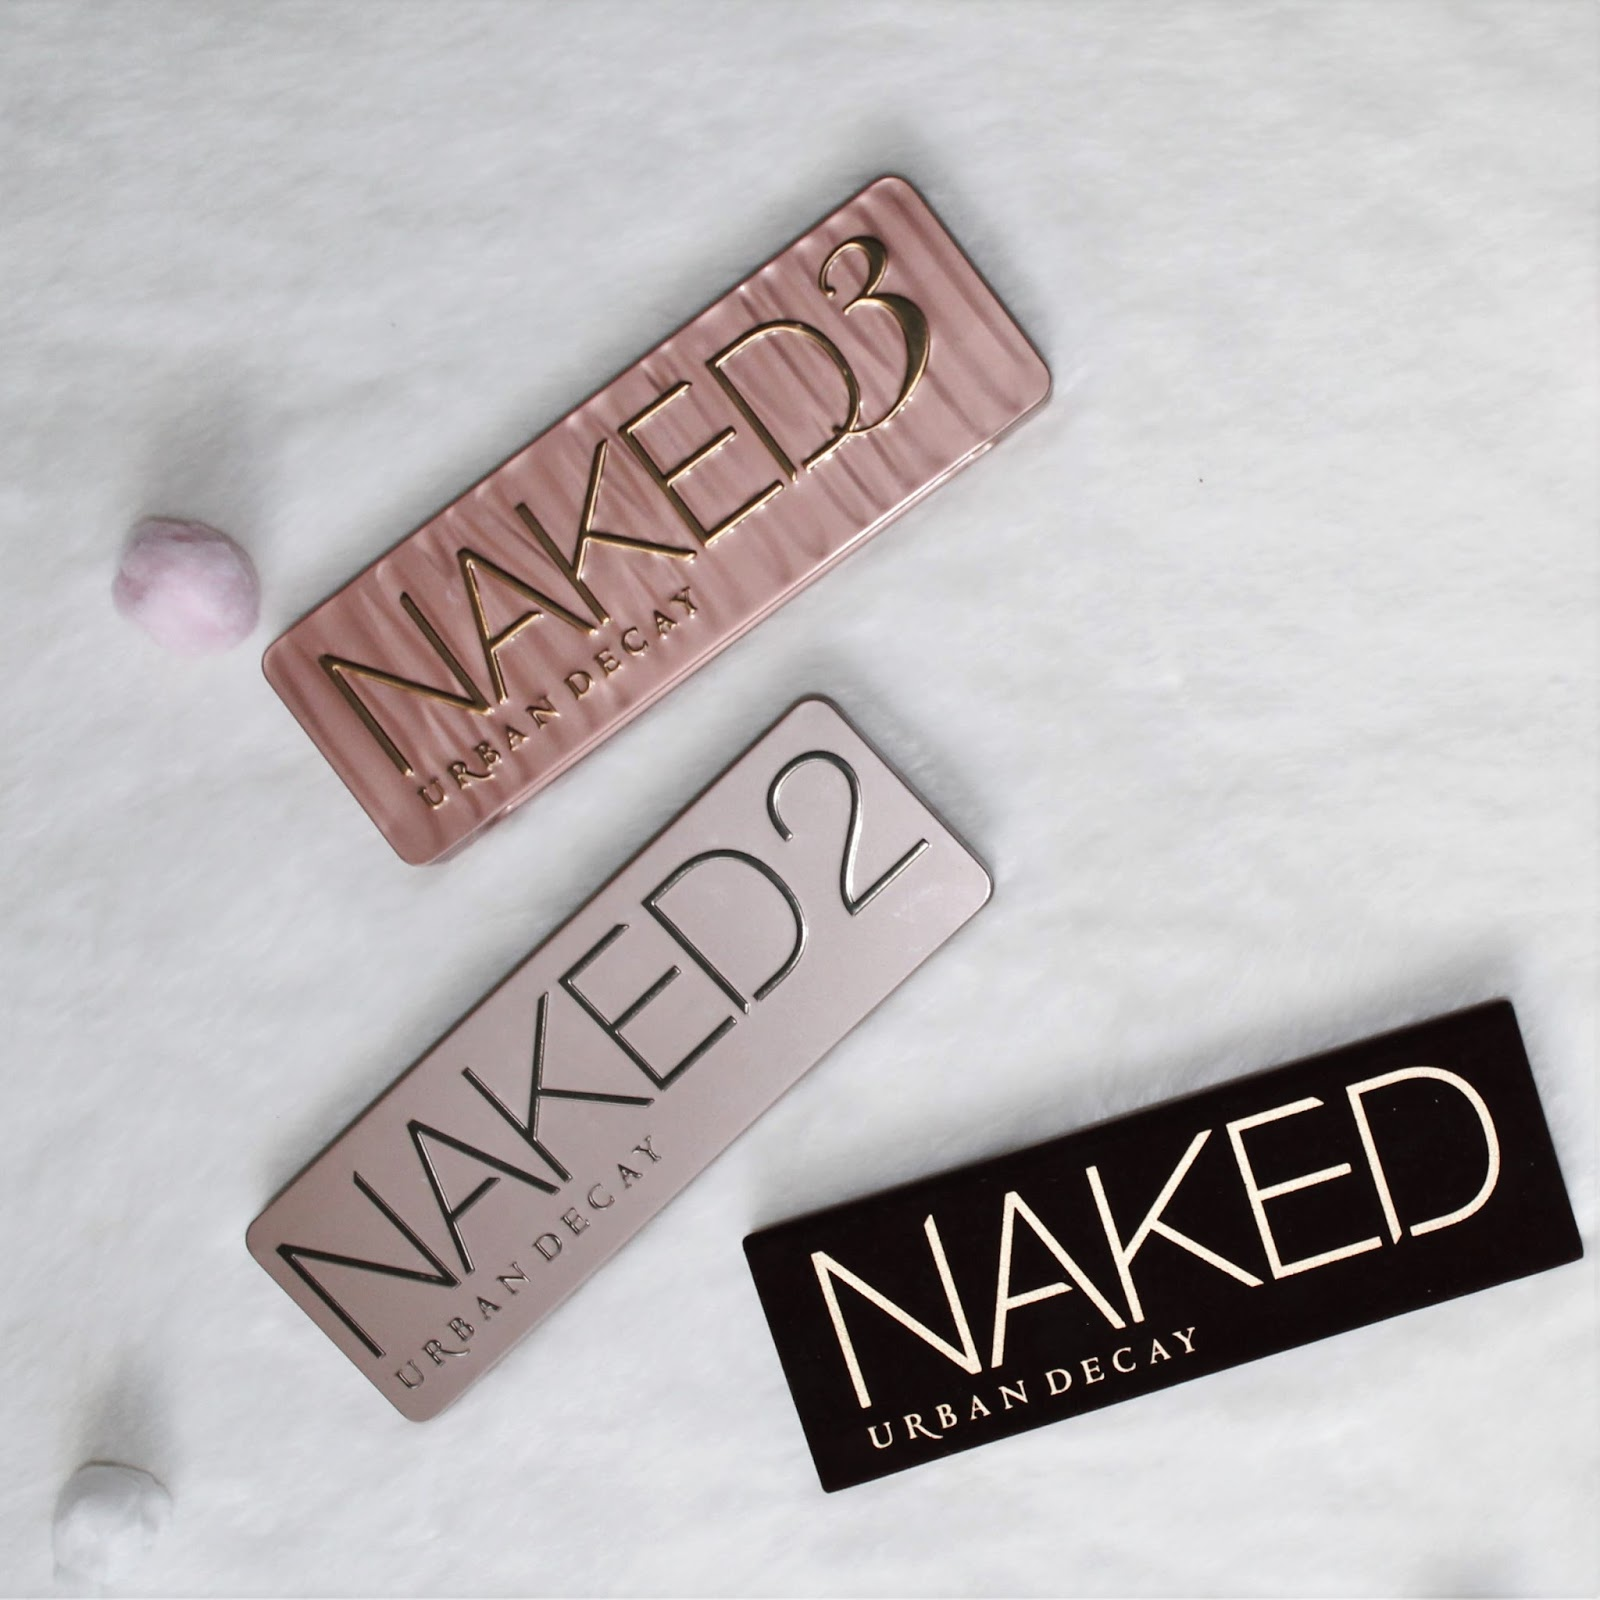 concours jeu gagne naked 1 2 3 urban decay palette maquillage